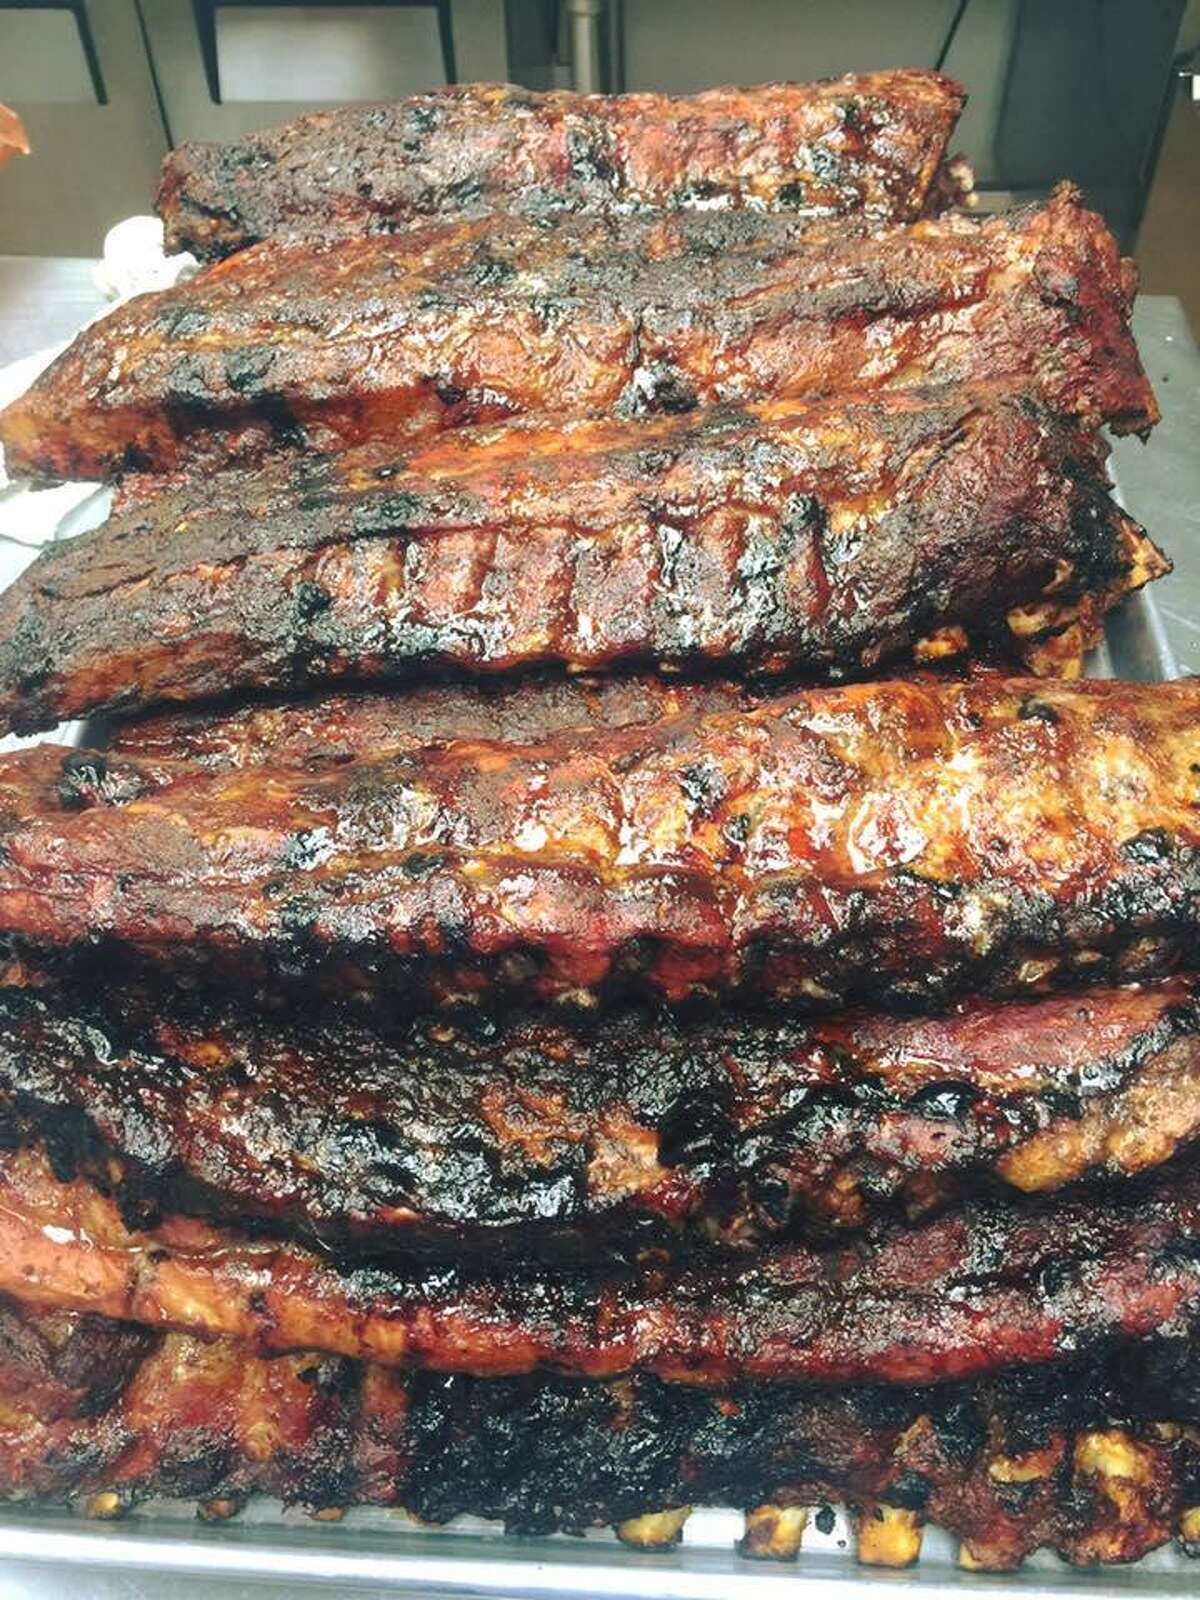 DrewbaQ ribs are worth lining up for.